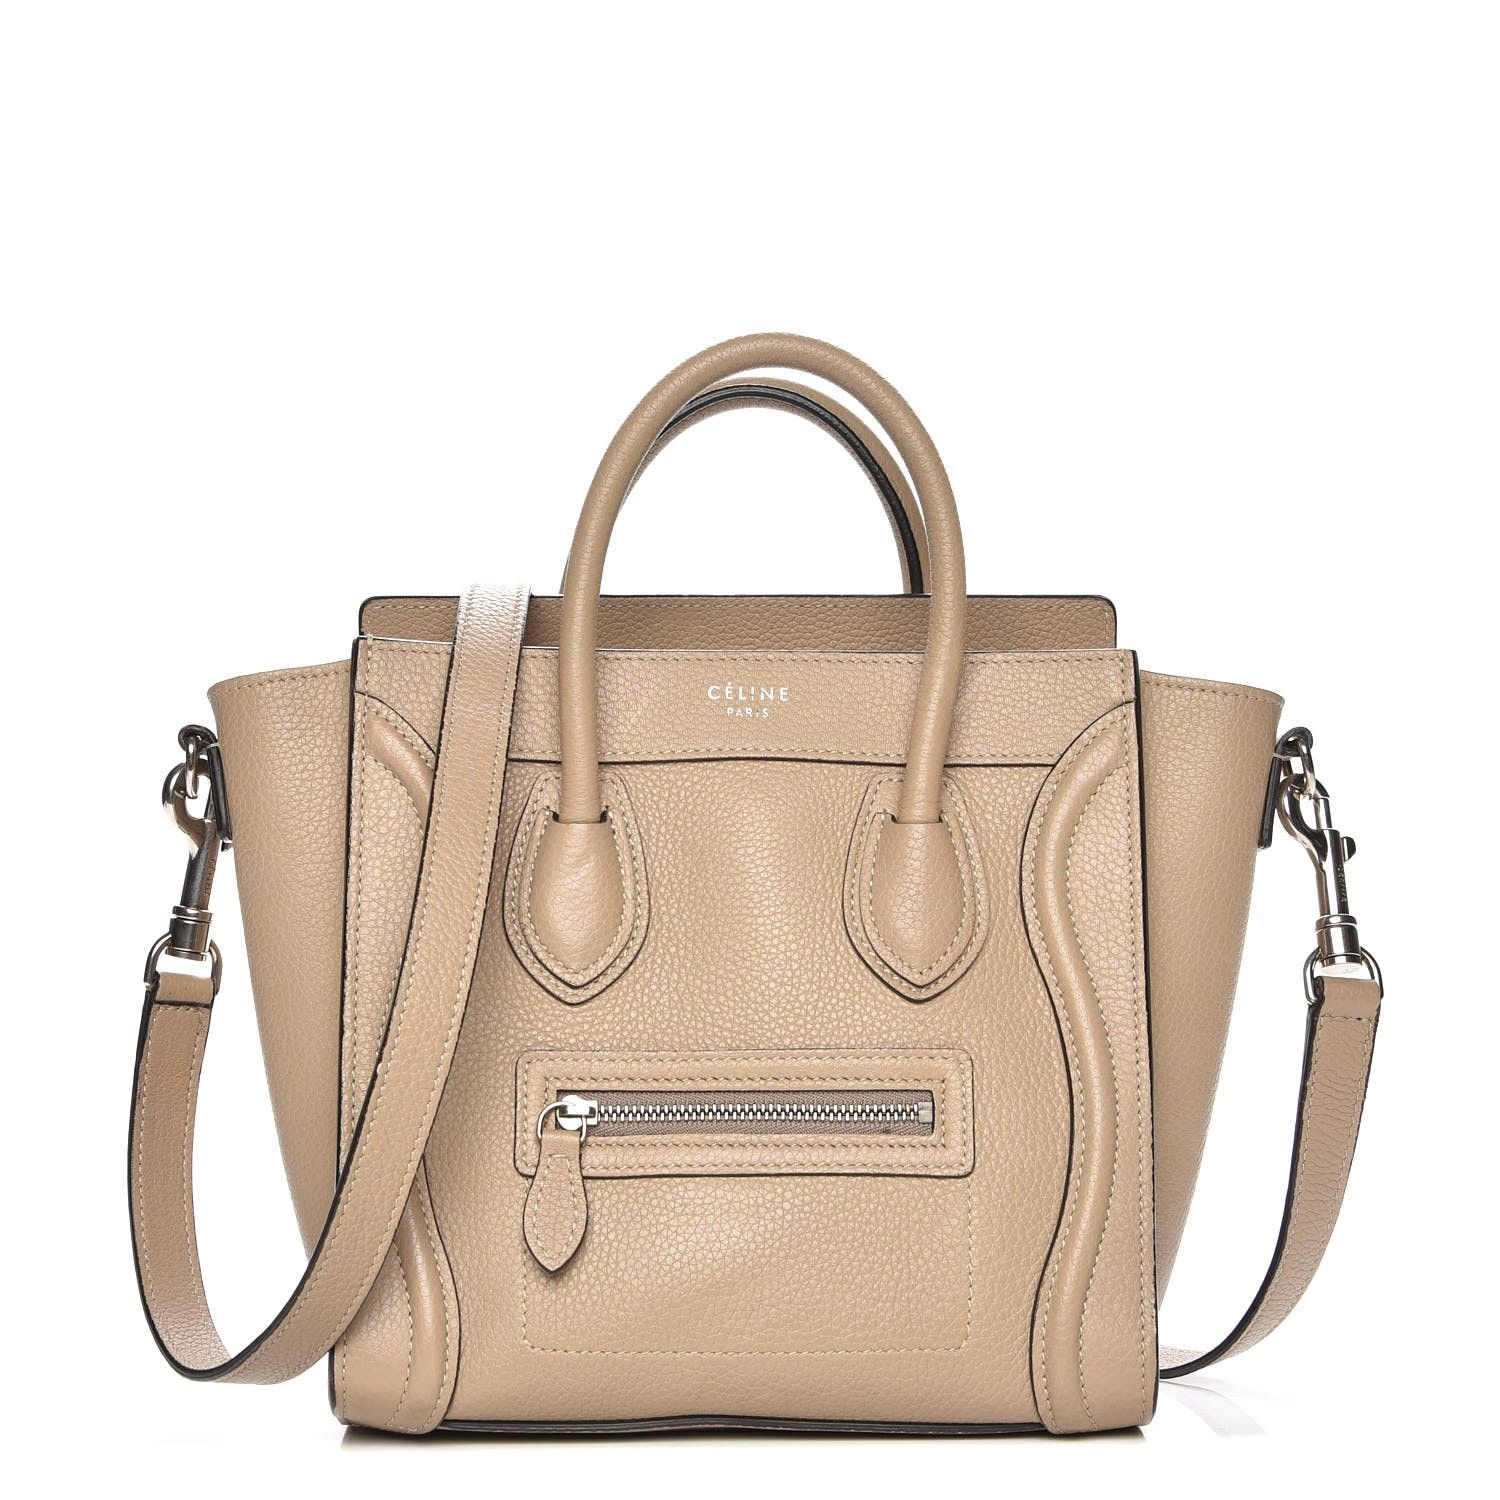 b2d13c8c6571 This is an CELINE Drummed Calfskin Nano Luggage in Dune. This stylish bag  is crafted